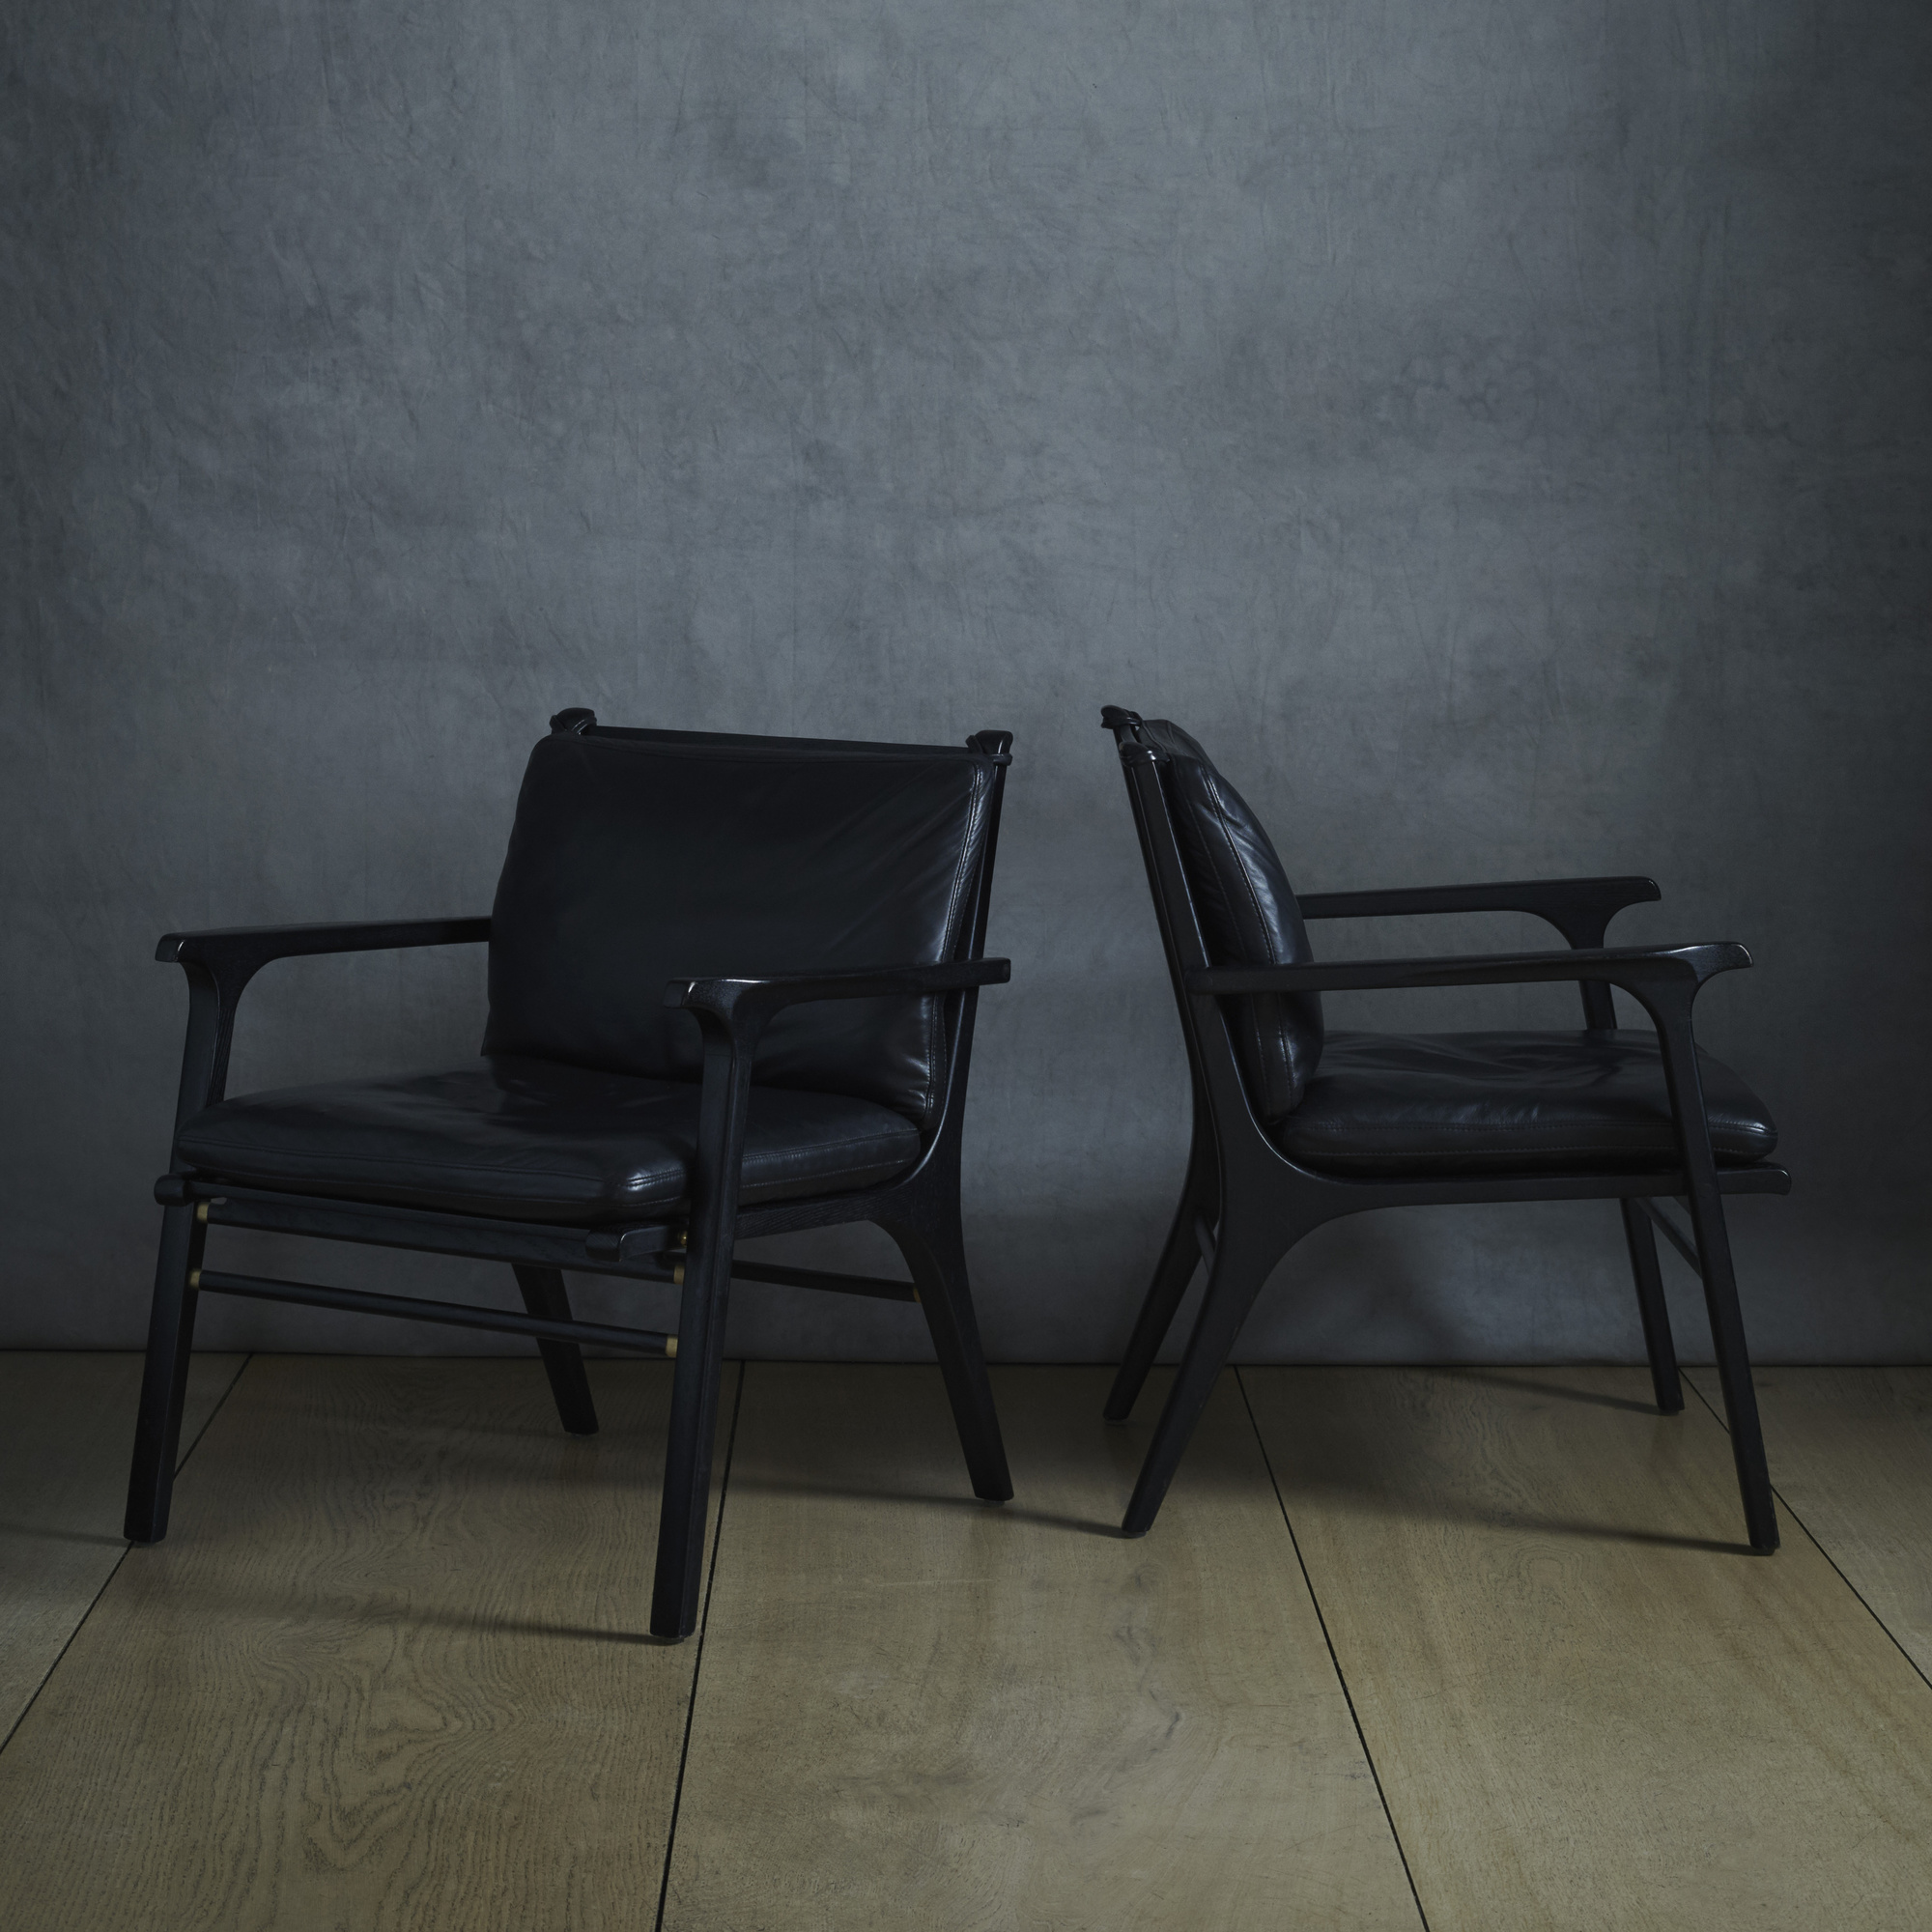 127: SPACE Copenhagen / Rén Collection Lounge Chairs, Pair (1 Of 2)